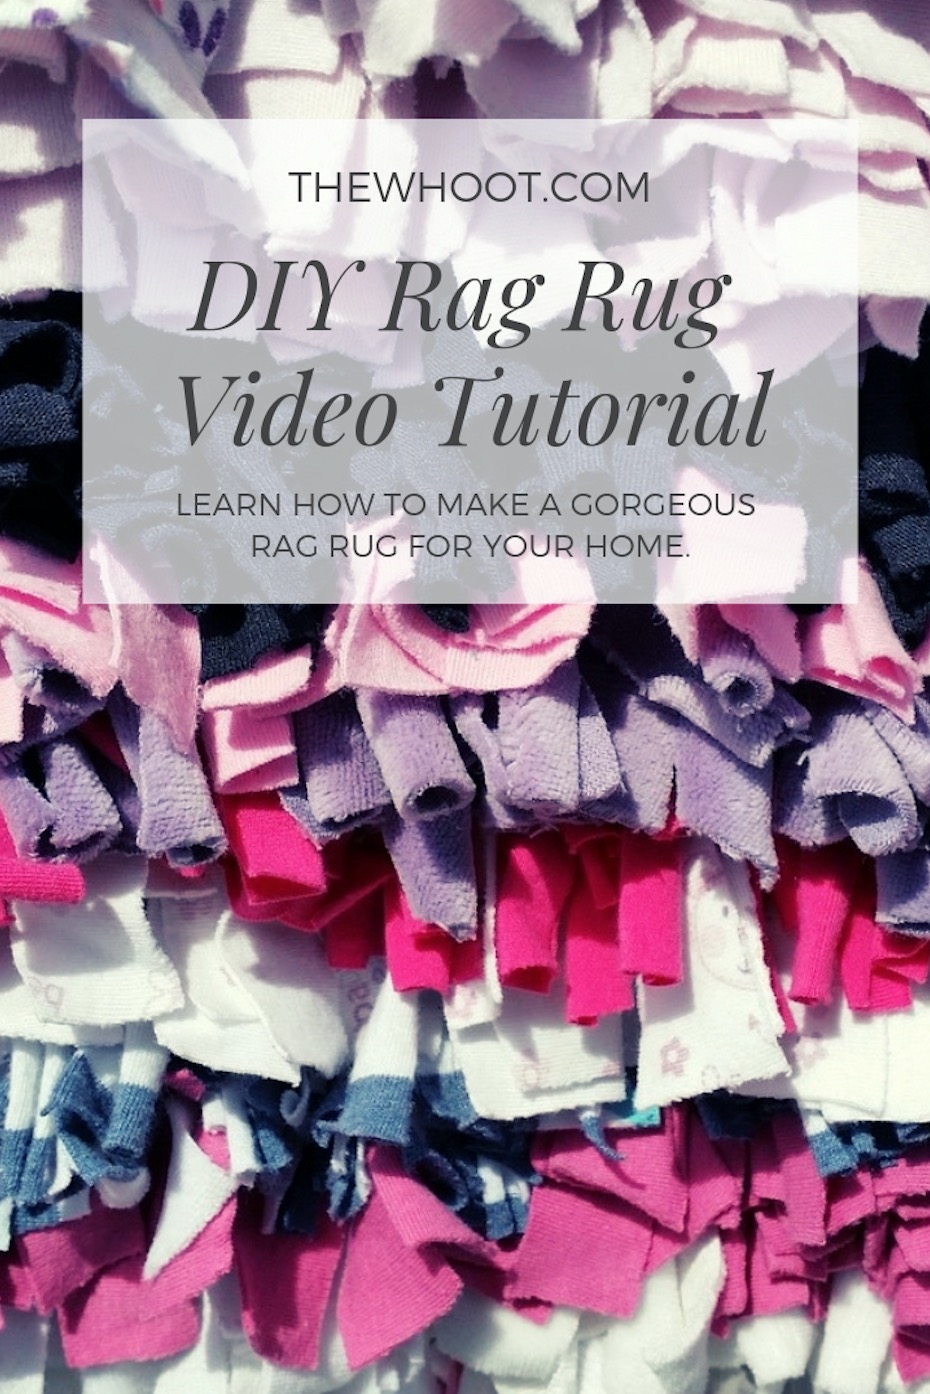 Easy Rag Rug Diy Watch The Quick Video Tutorial